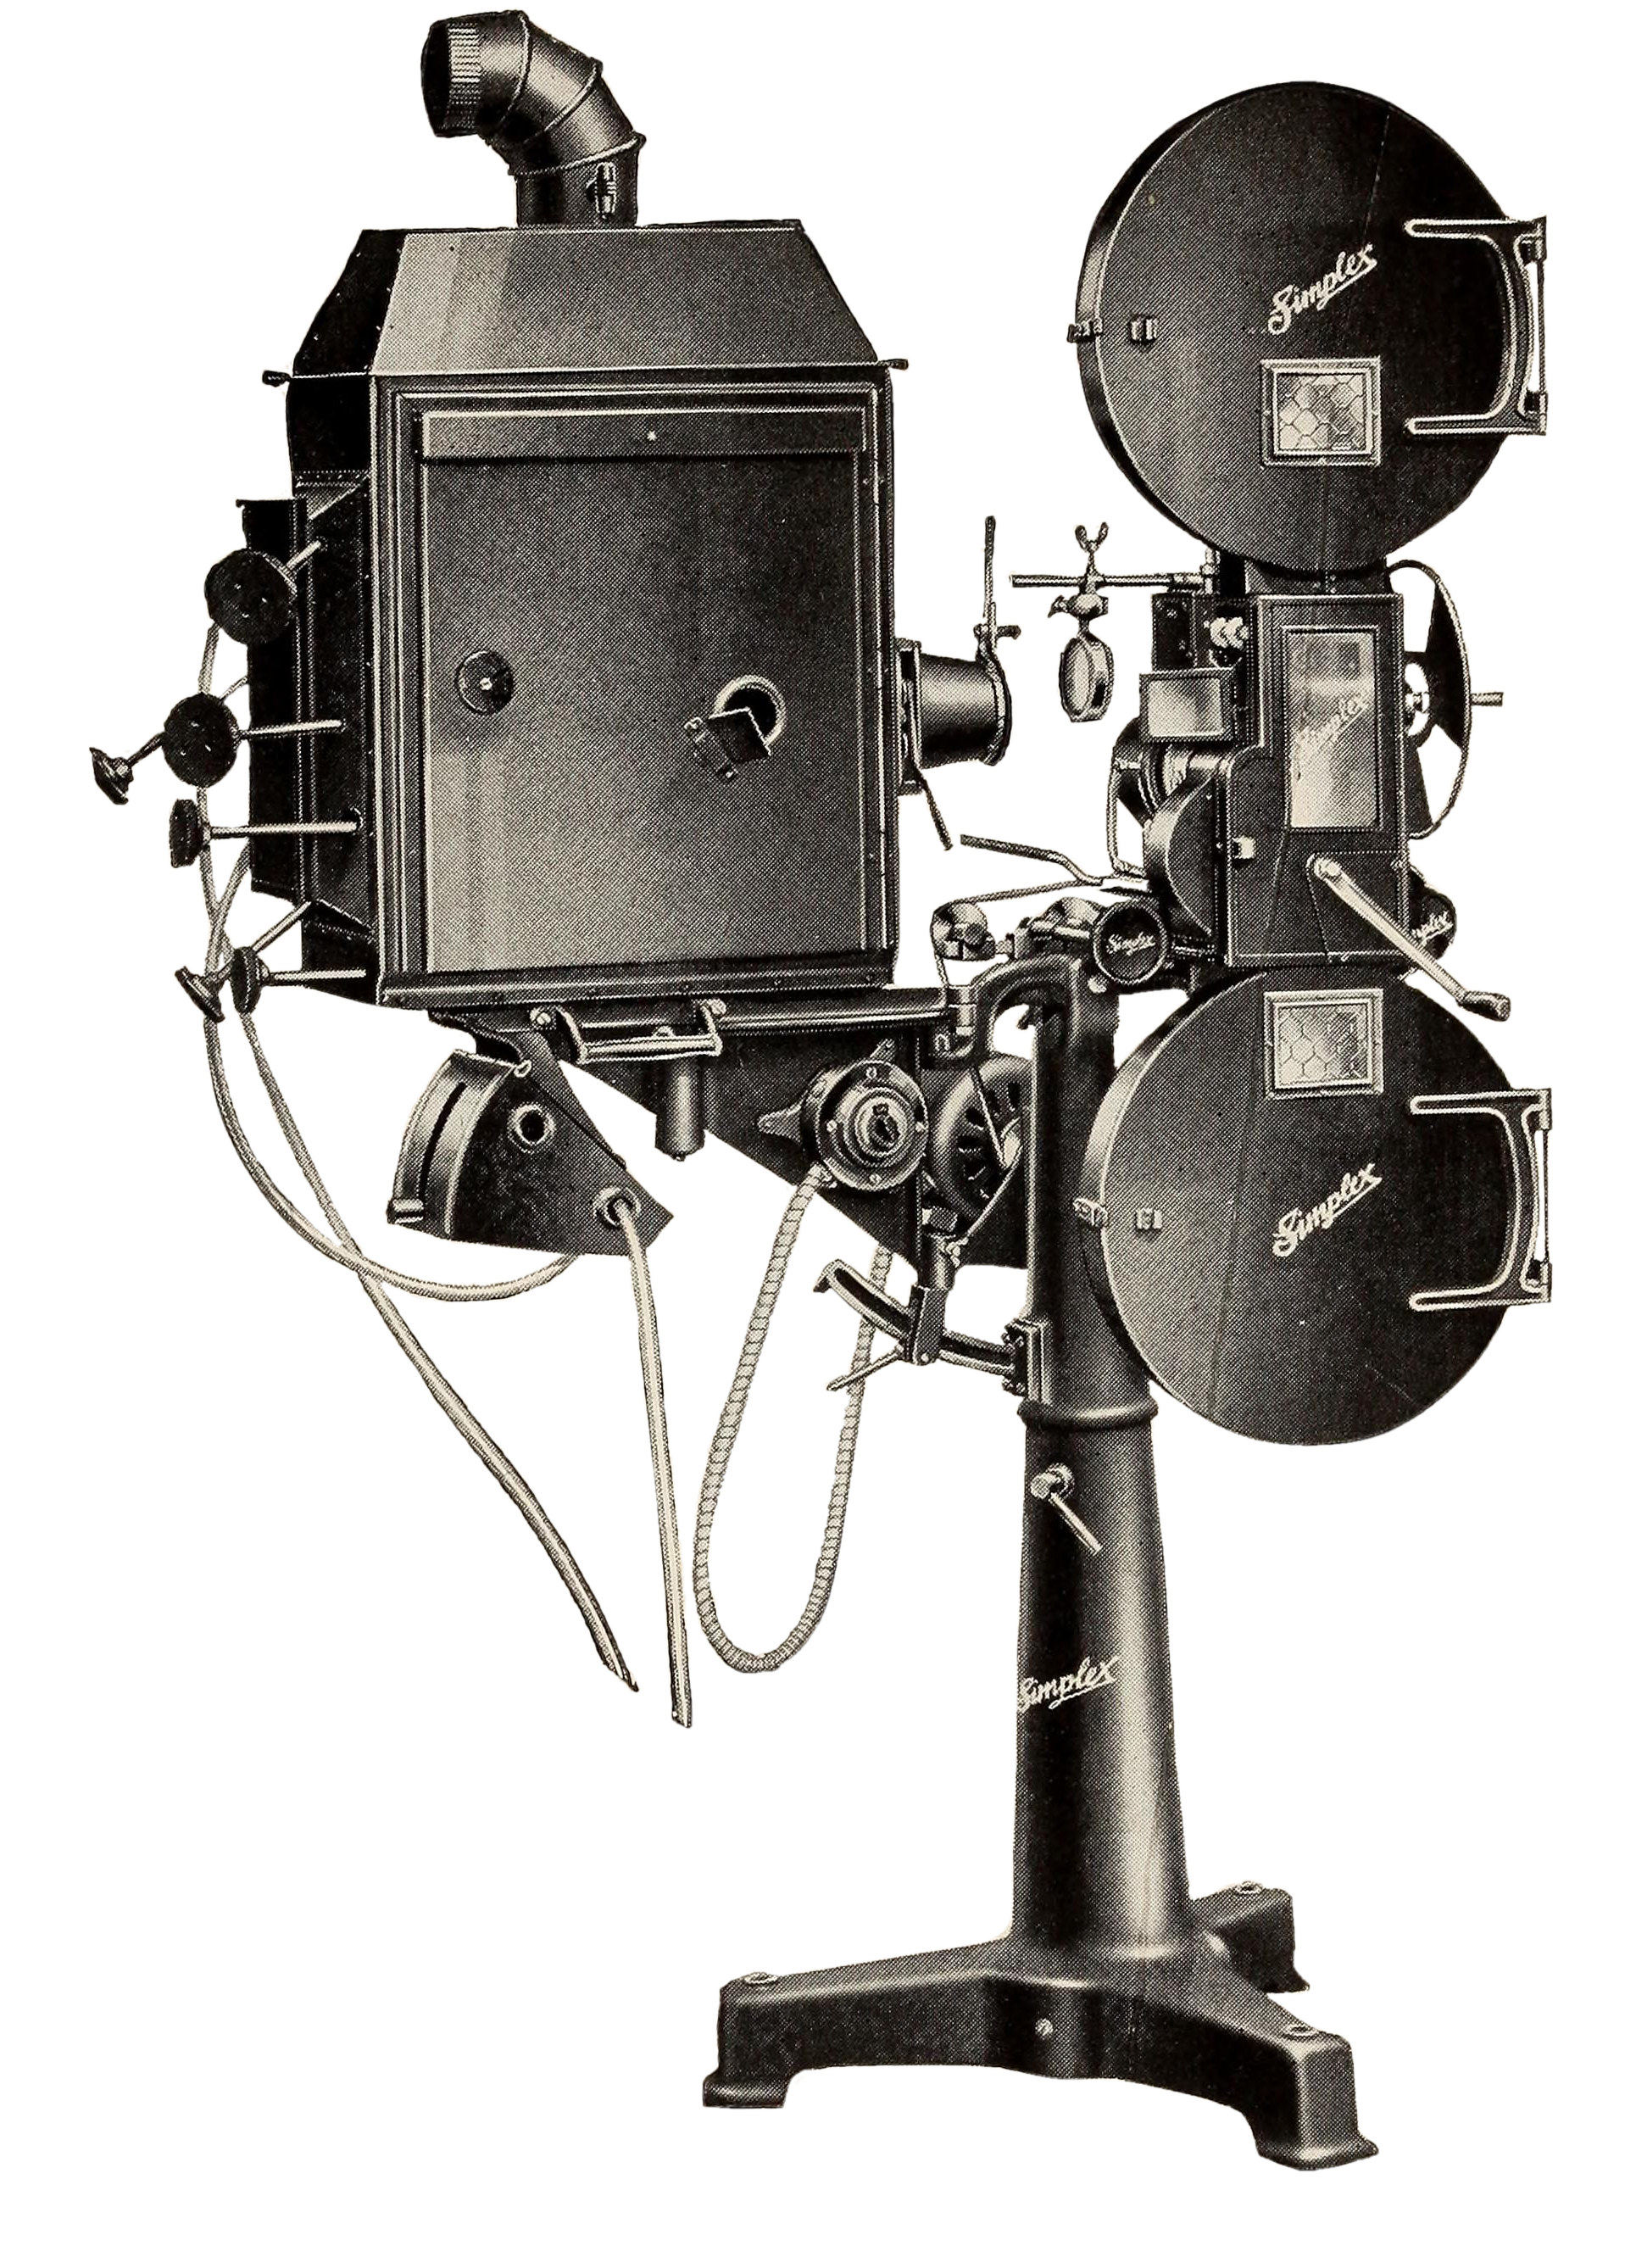 Cinema Projector Film Projector Png Image With Transparent Background Png Free Png Images Cinema Projector Film Projector Film Transfer